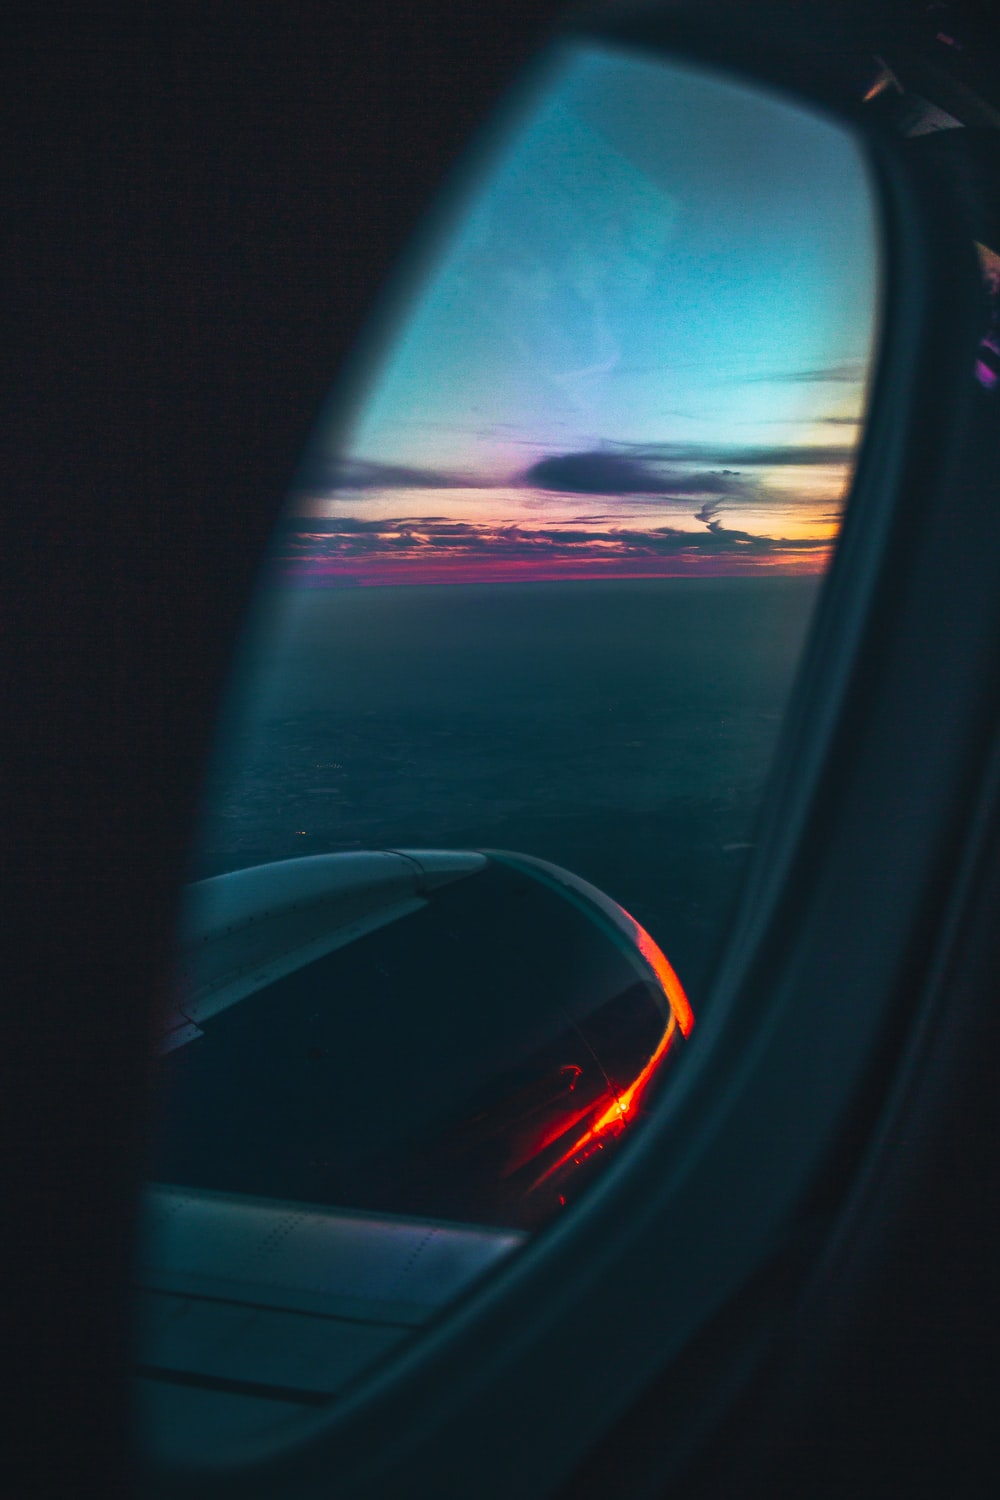 airplane window during golden hour